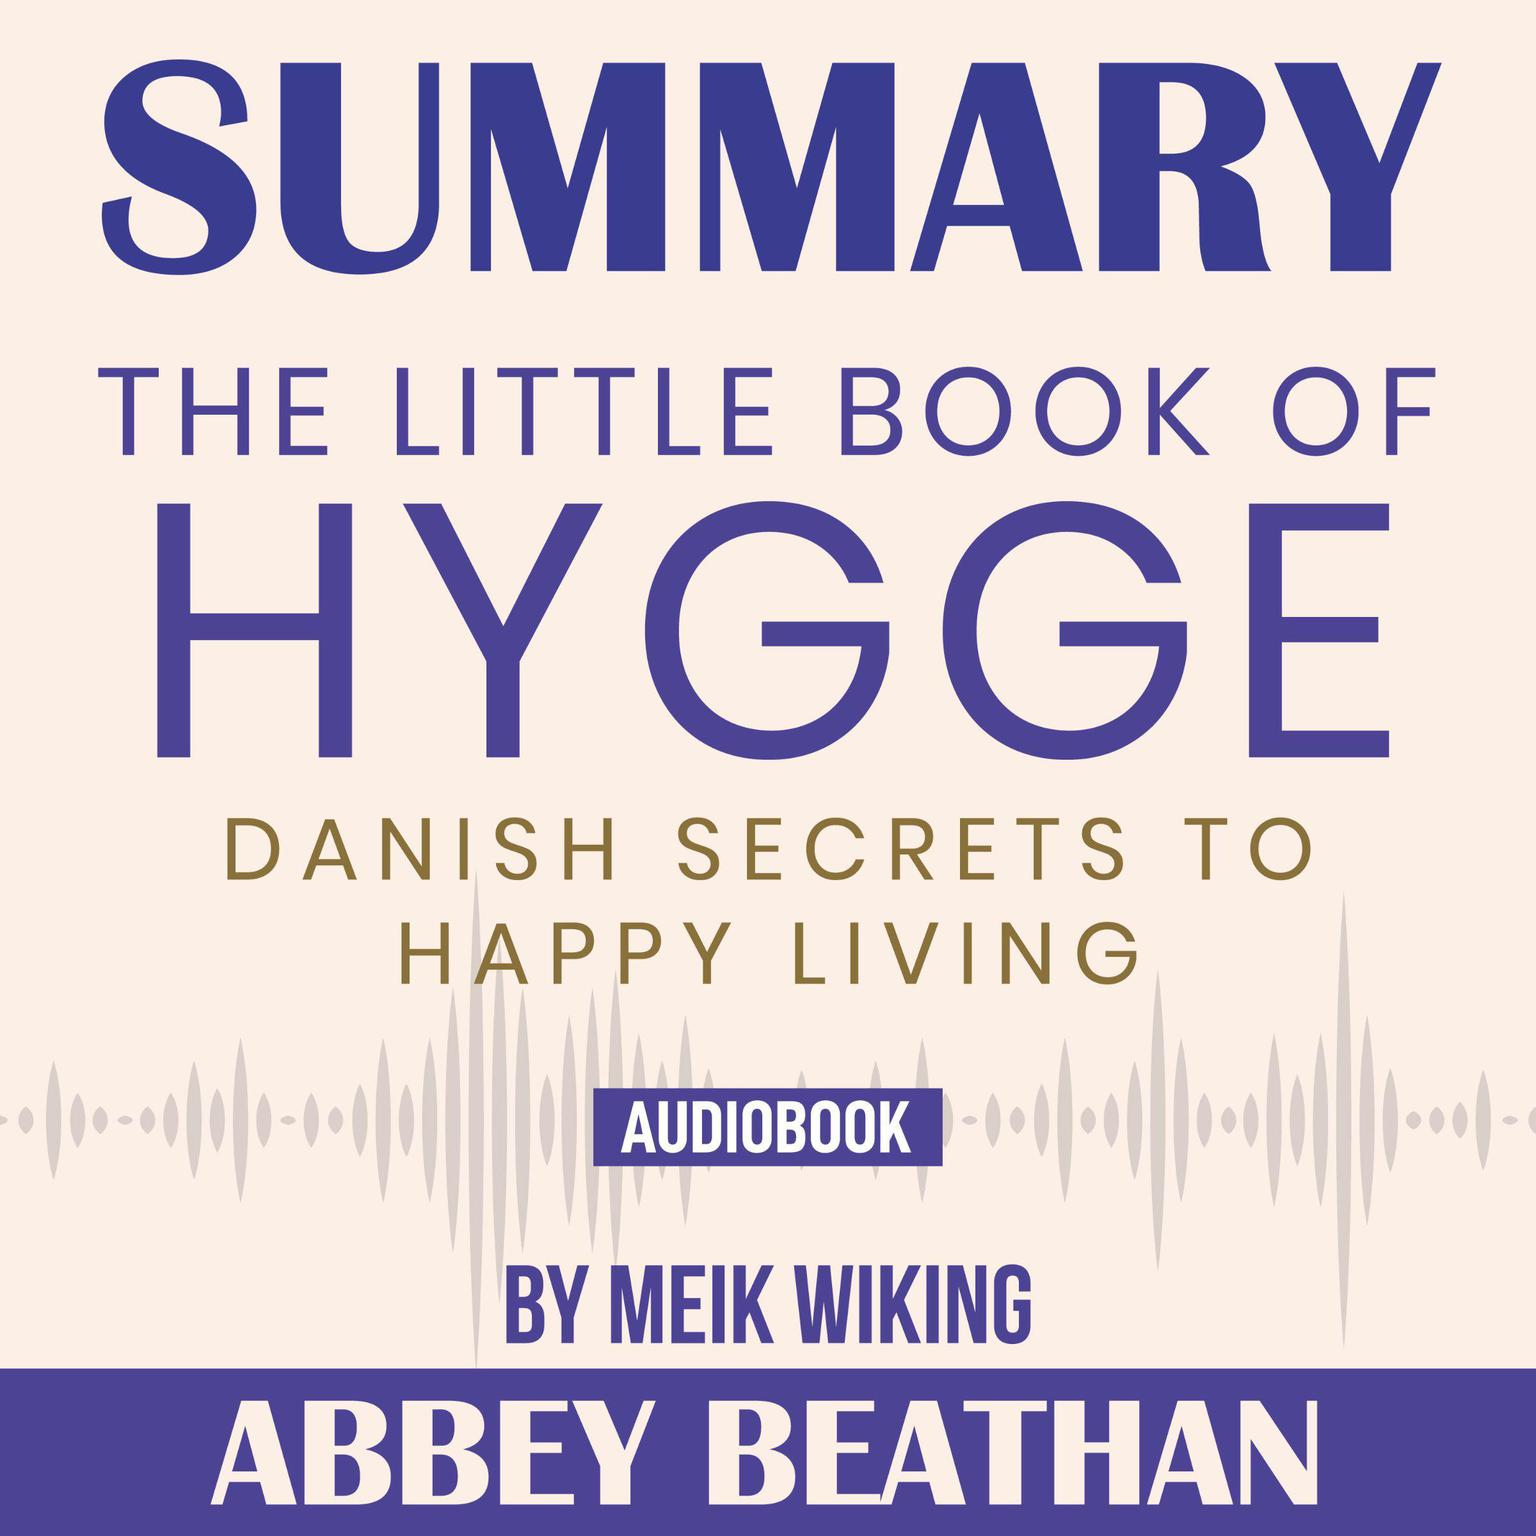 Summary of The Little Book of Hygge: Danish Secrets to Happy Living by Meik Wiking Audiobook, by Abbey Beathan